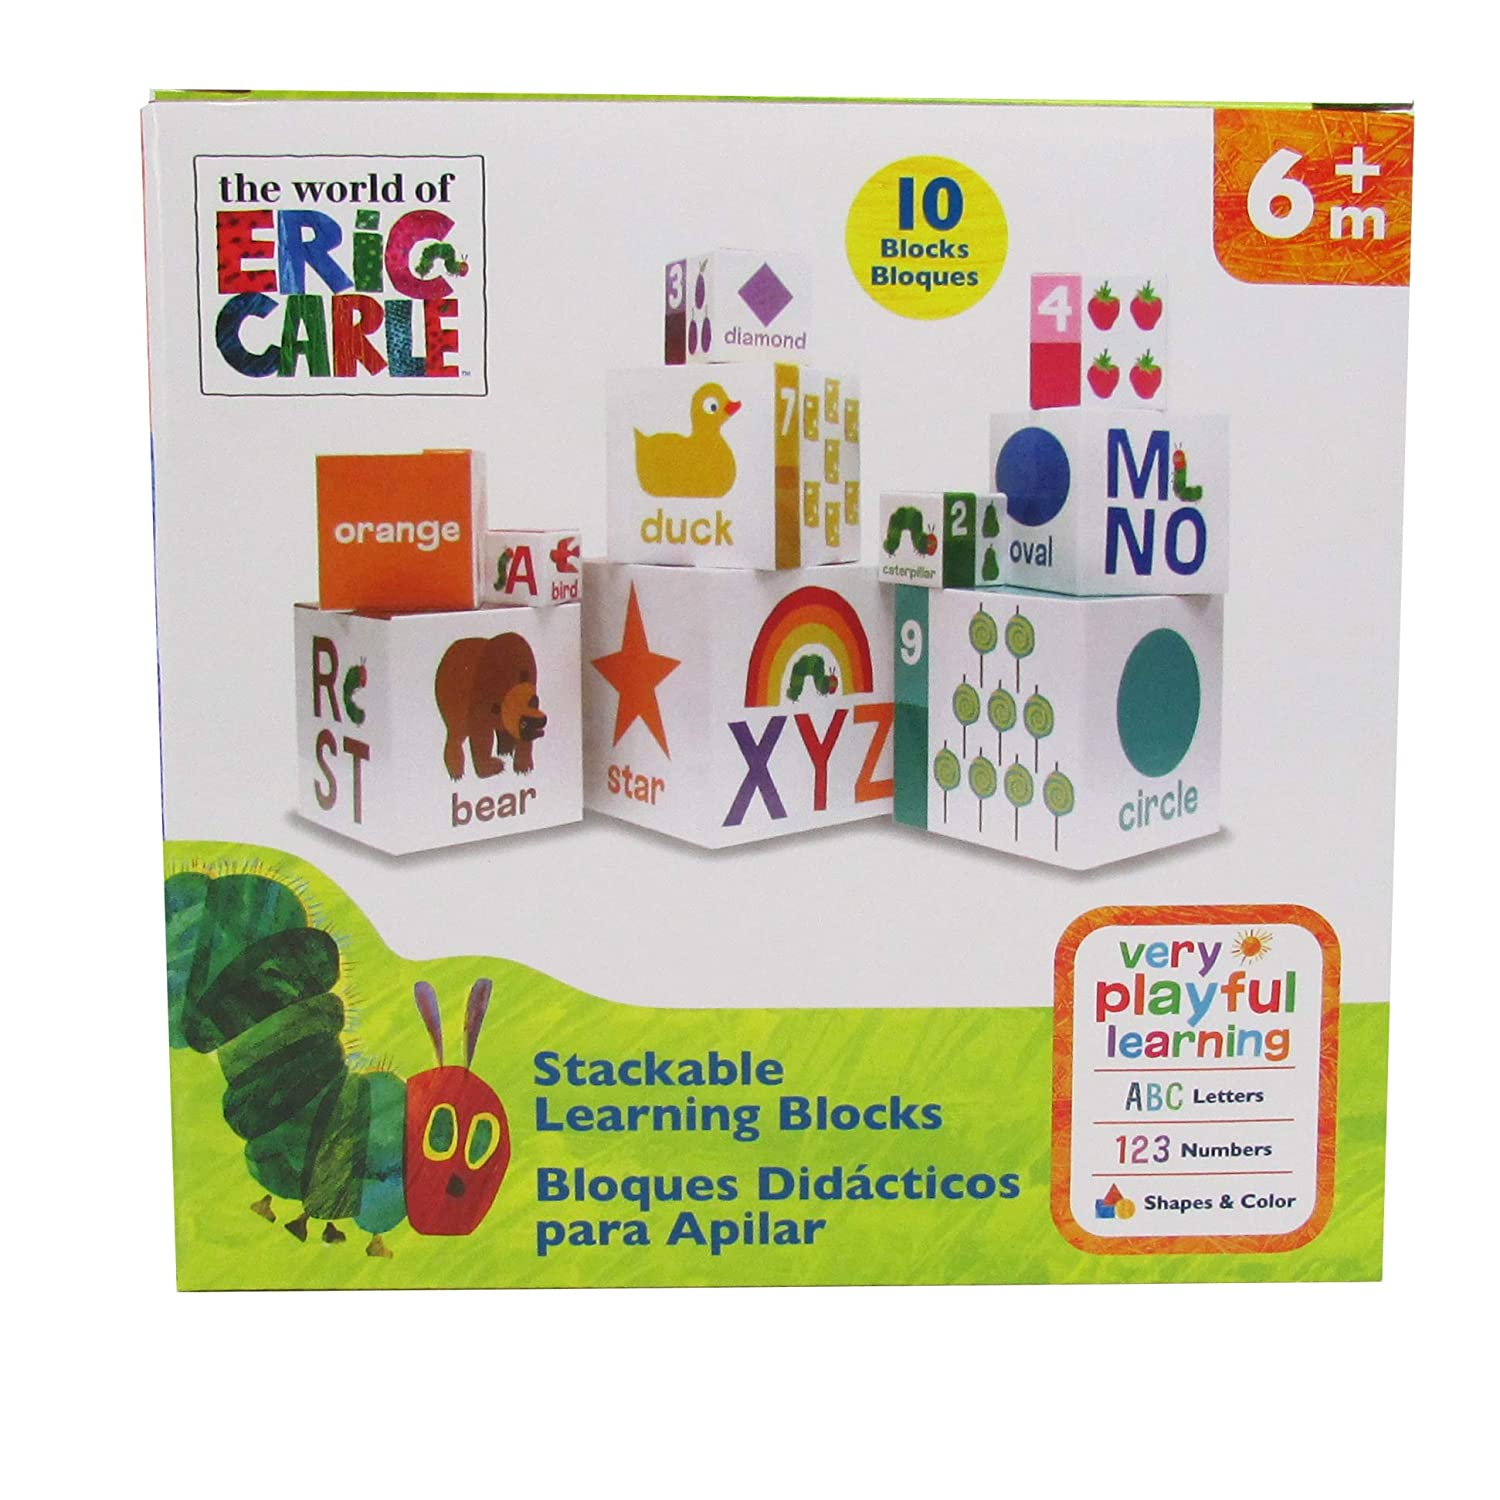 Amazon.com: World of Eric Carle, The Very Hungry Caterpillar ...